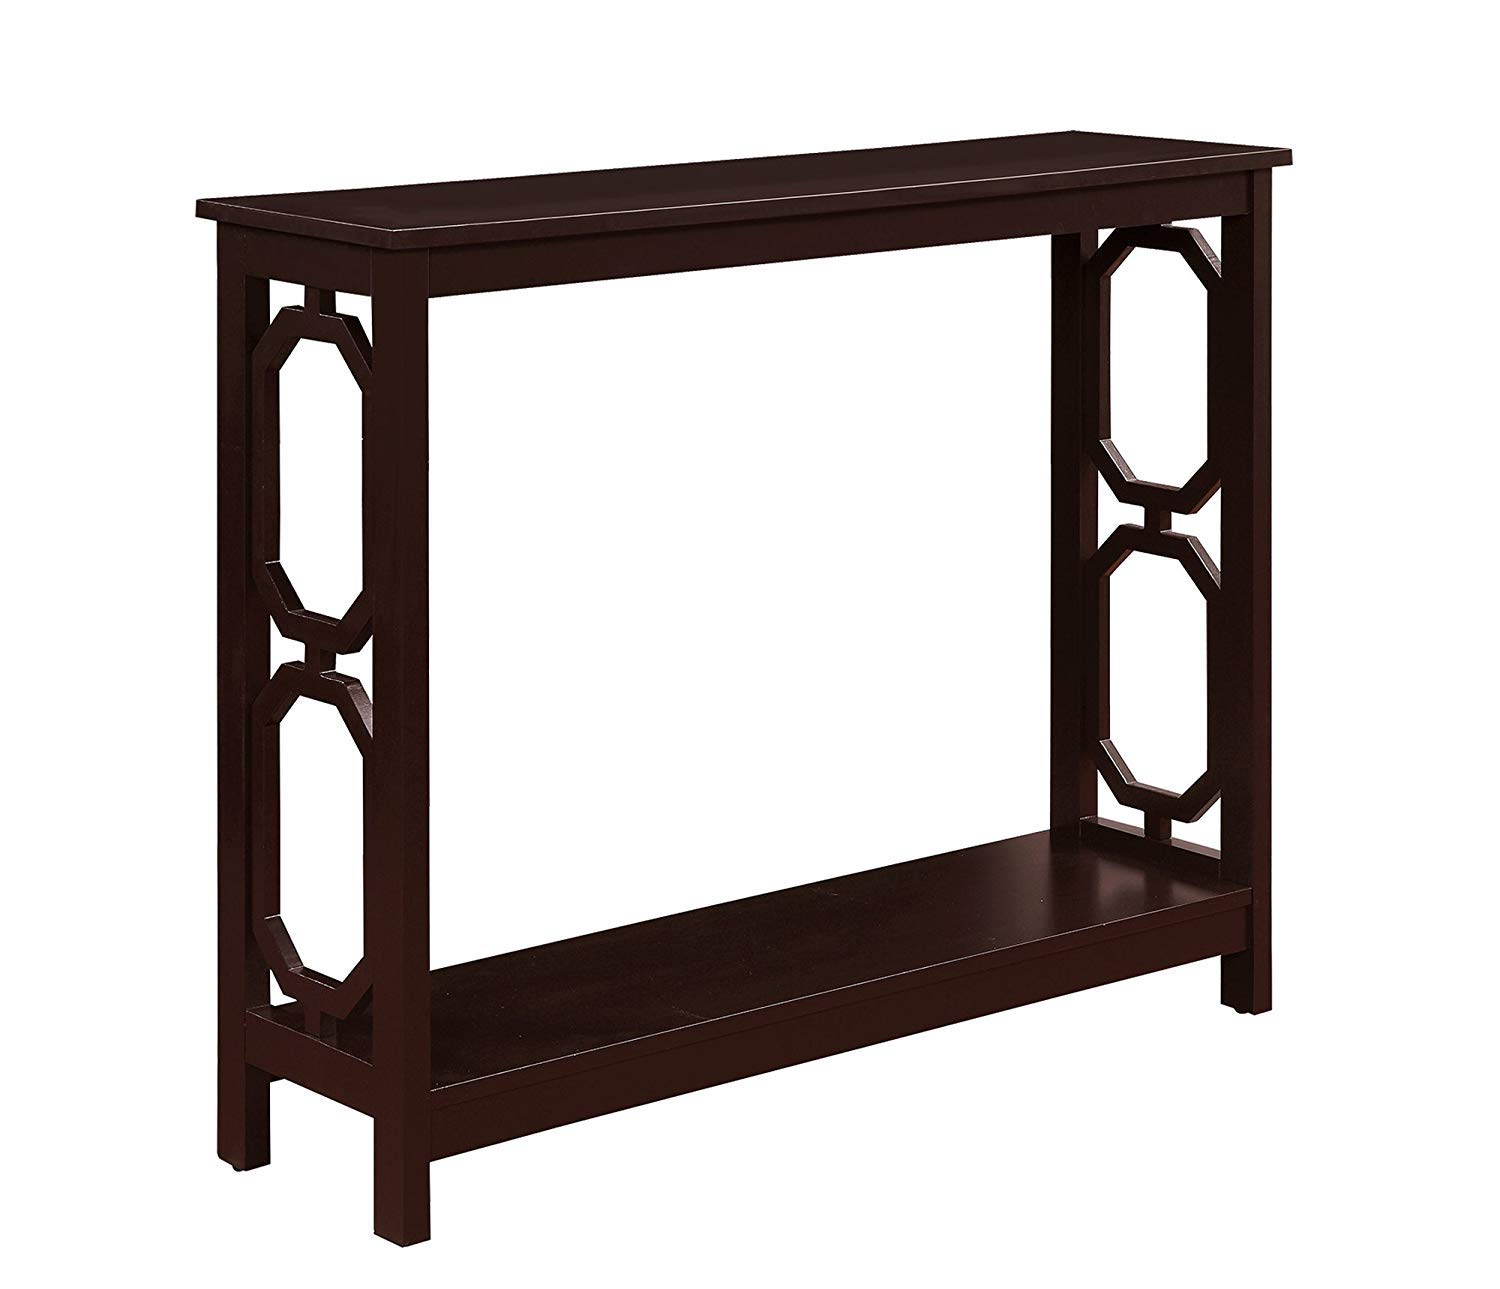 Convenience Concepts 203230ES Console Table, Espresso